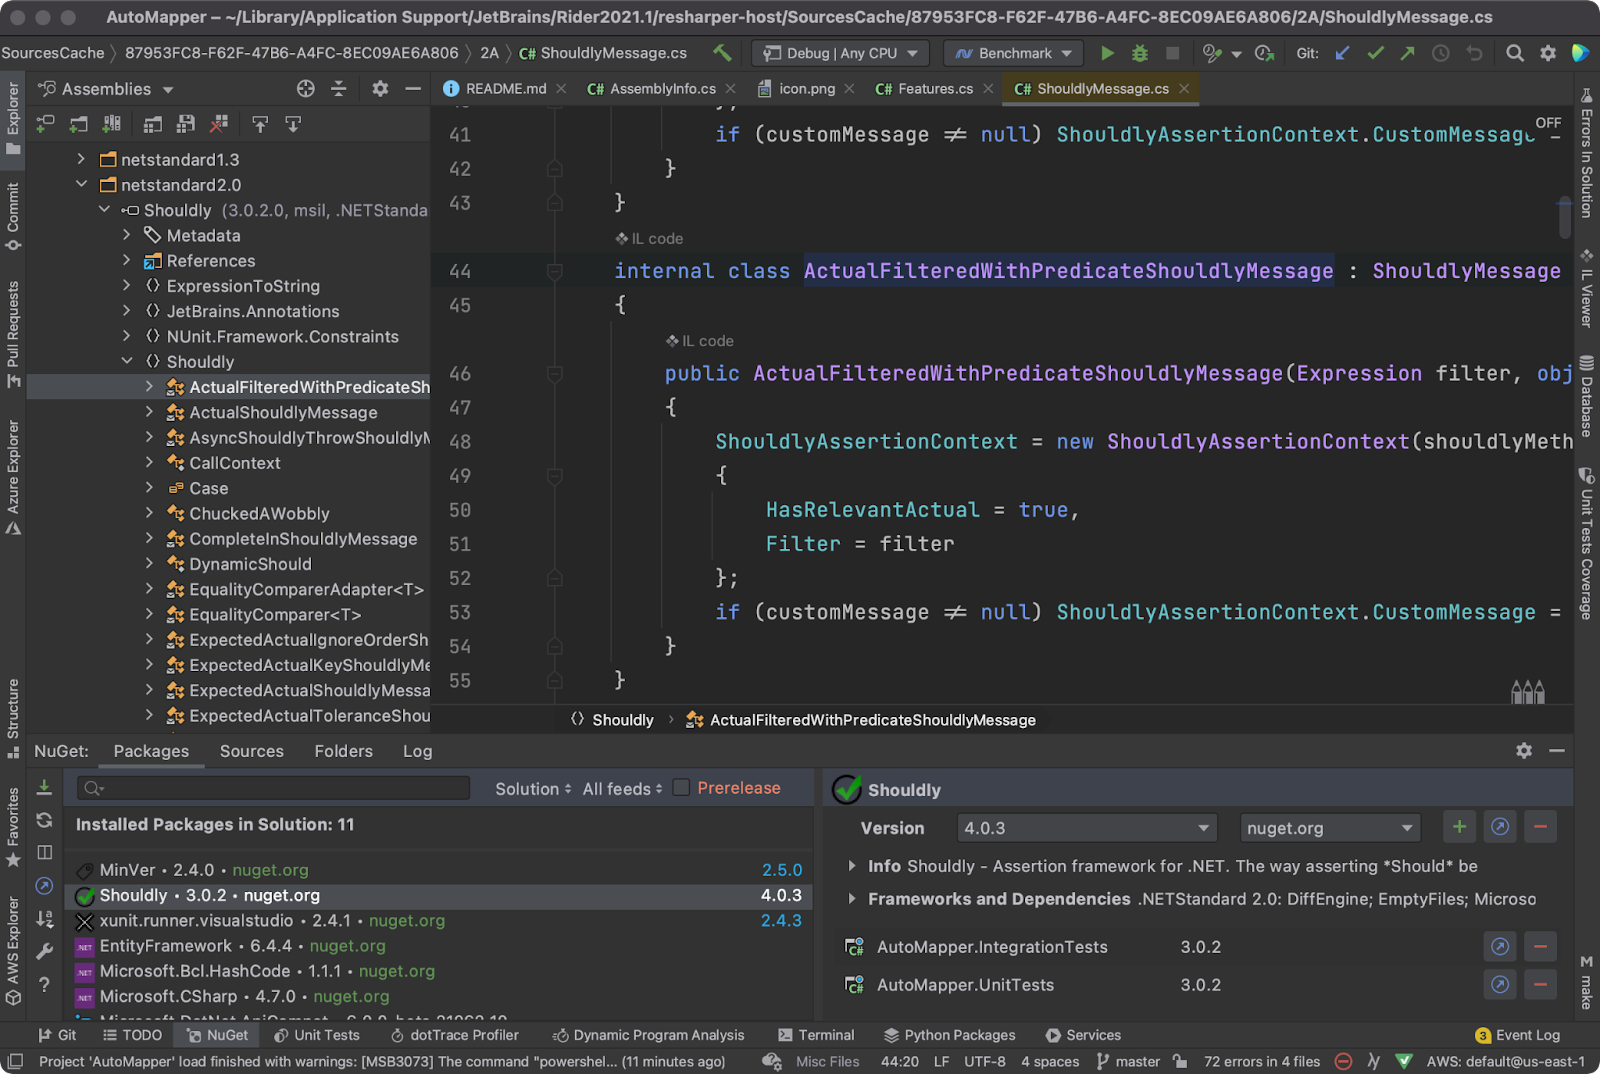 Rider still has the ability to retrieve and decompile directly from NuGet sources.